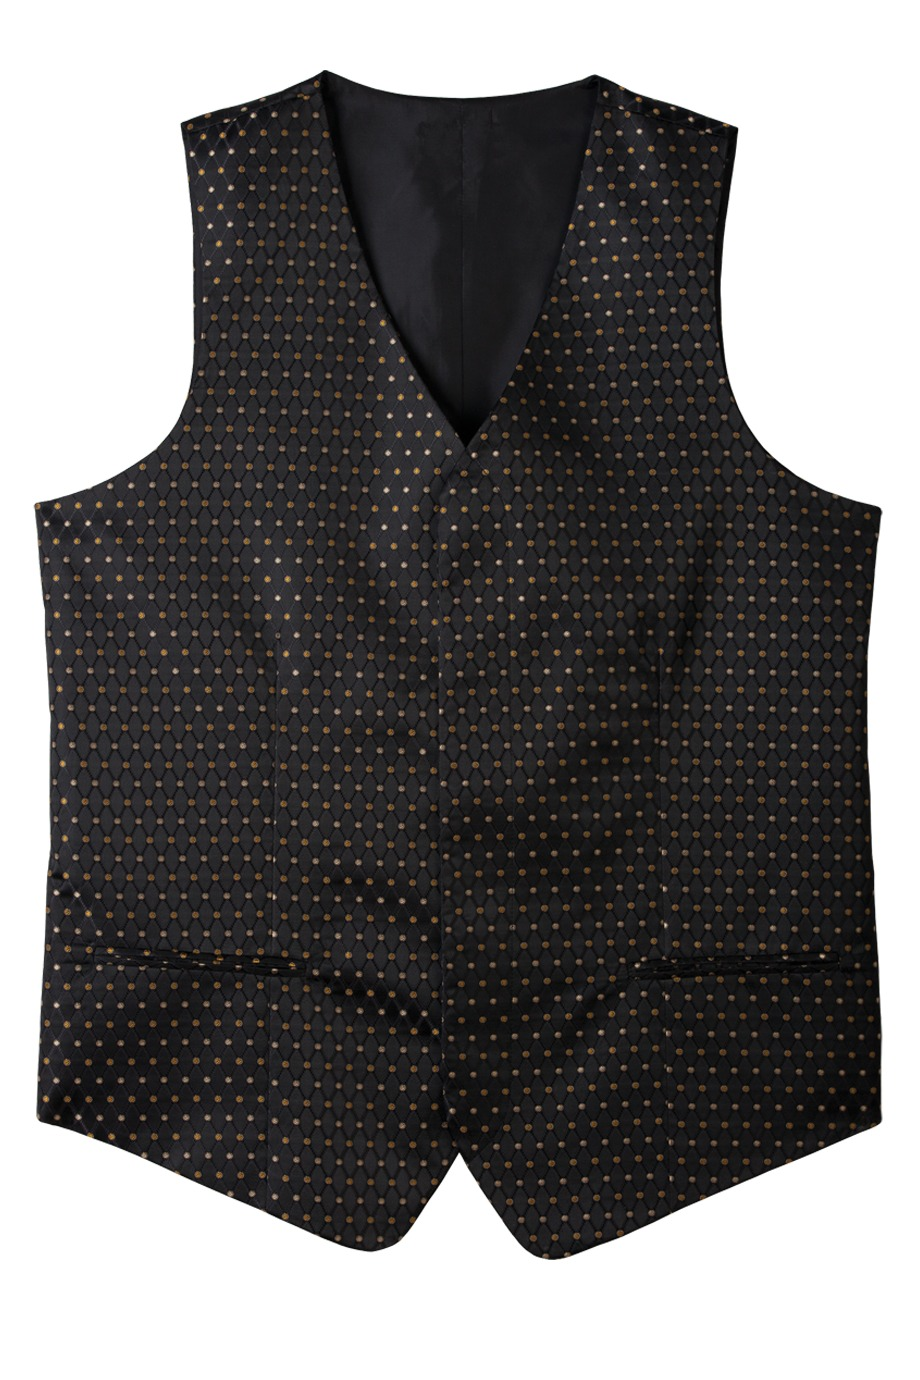 Edwards Garment 4497 - Men's Diamond And Dots